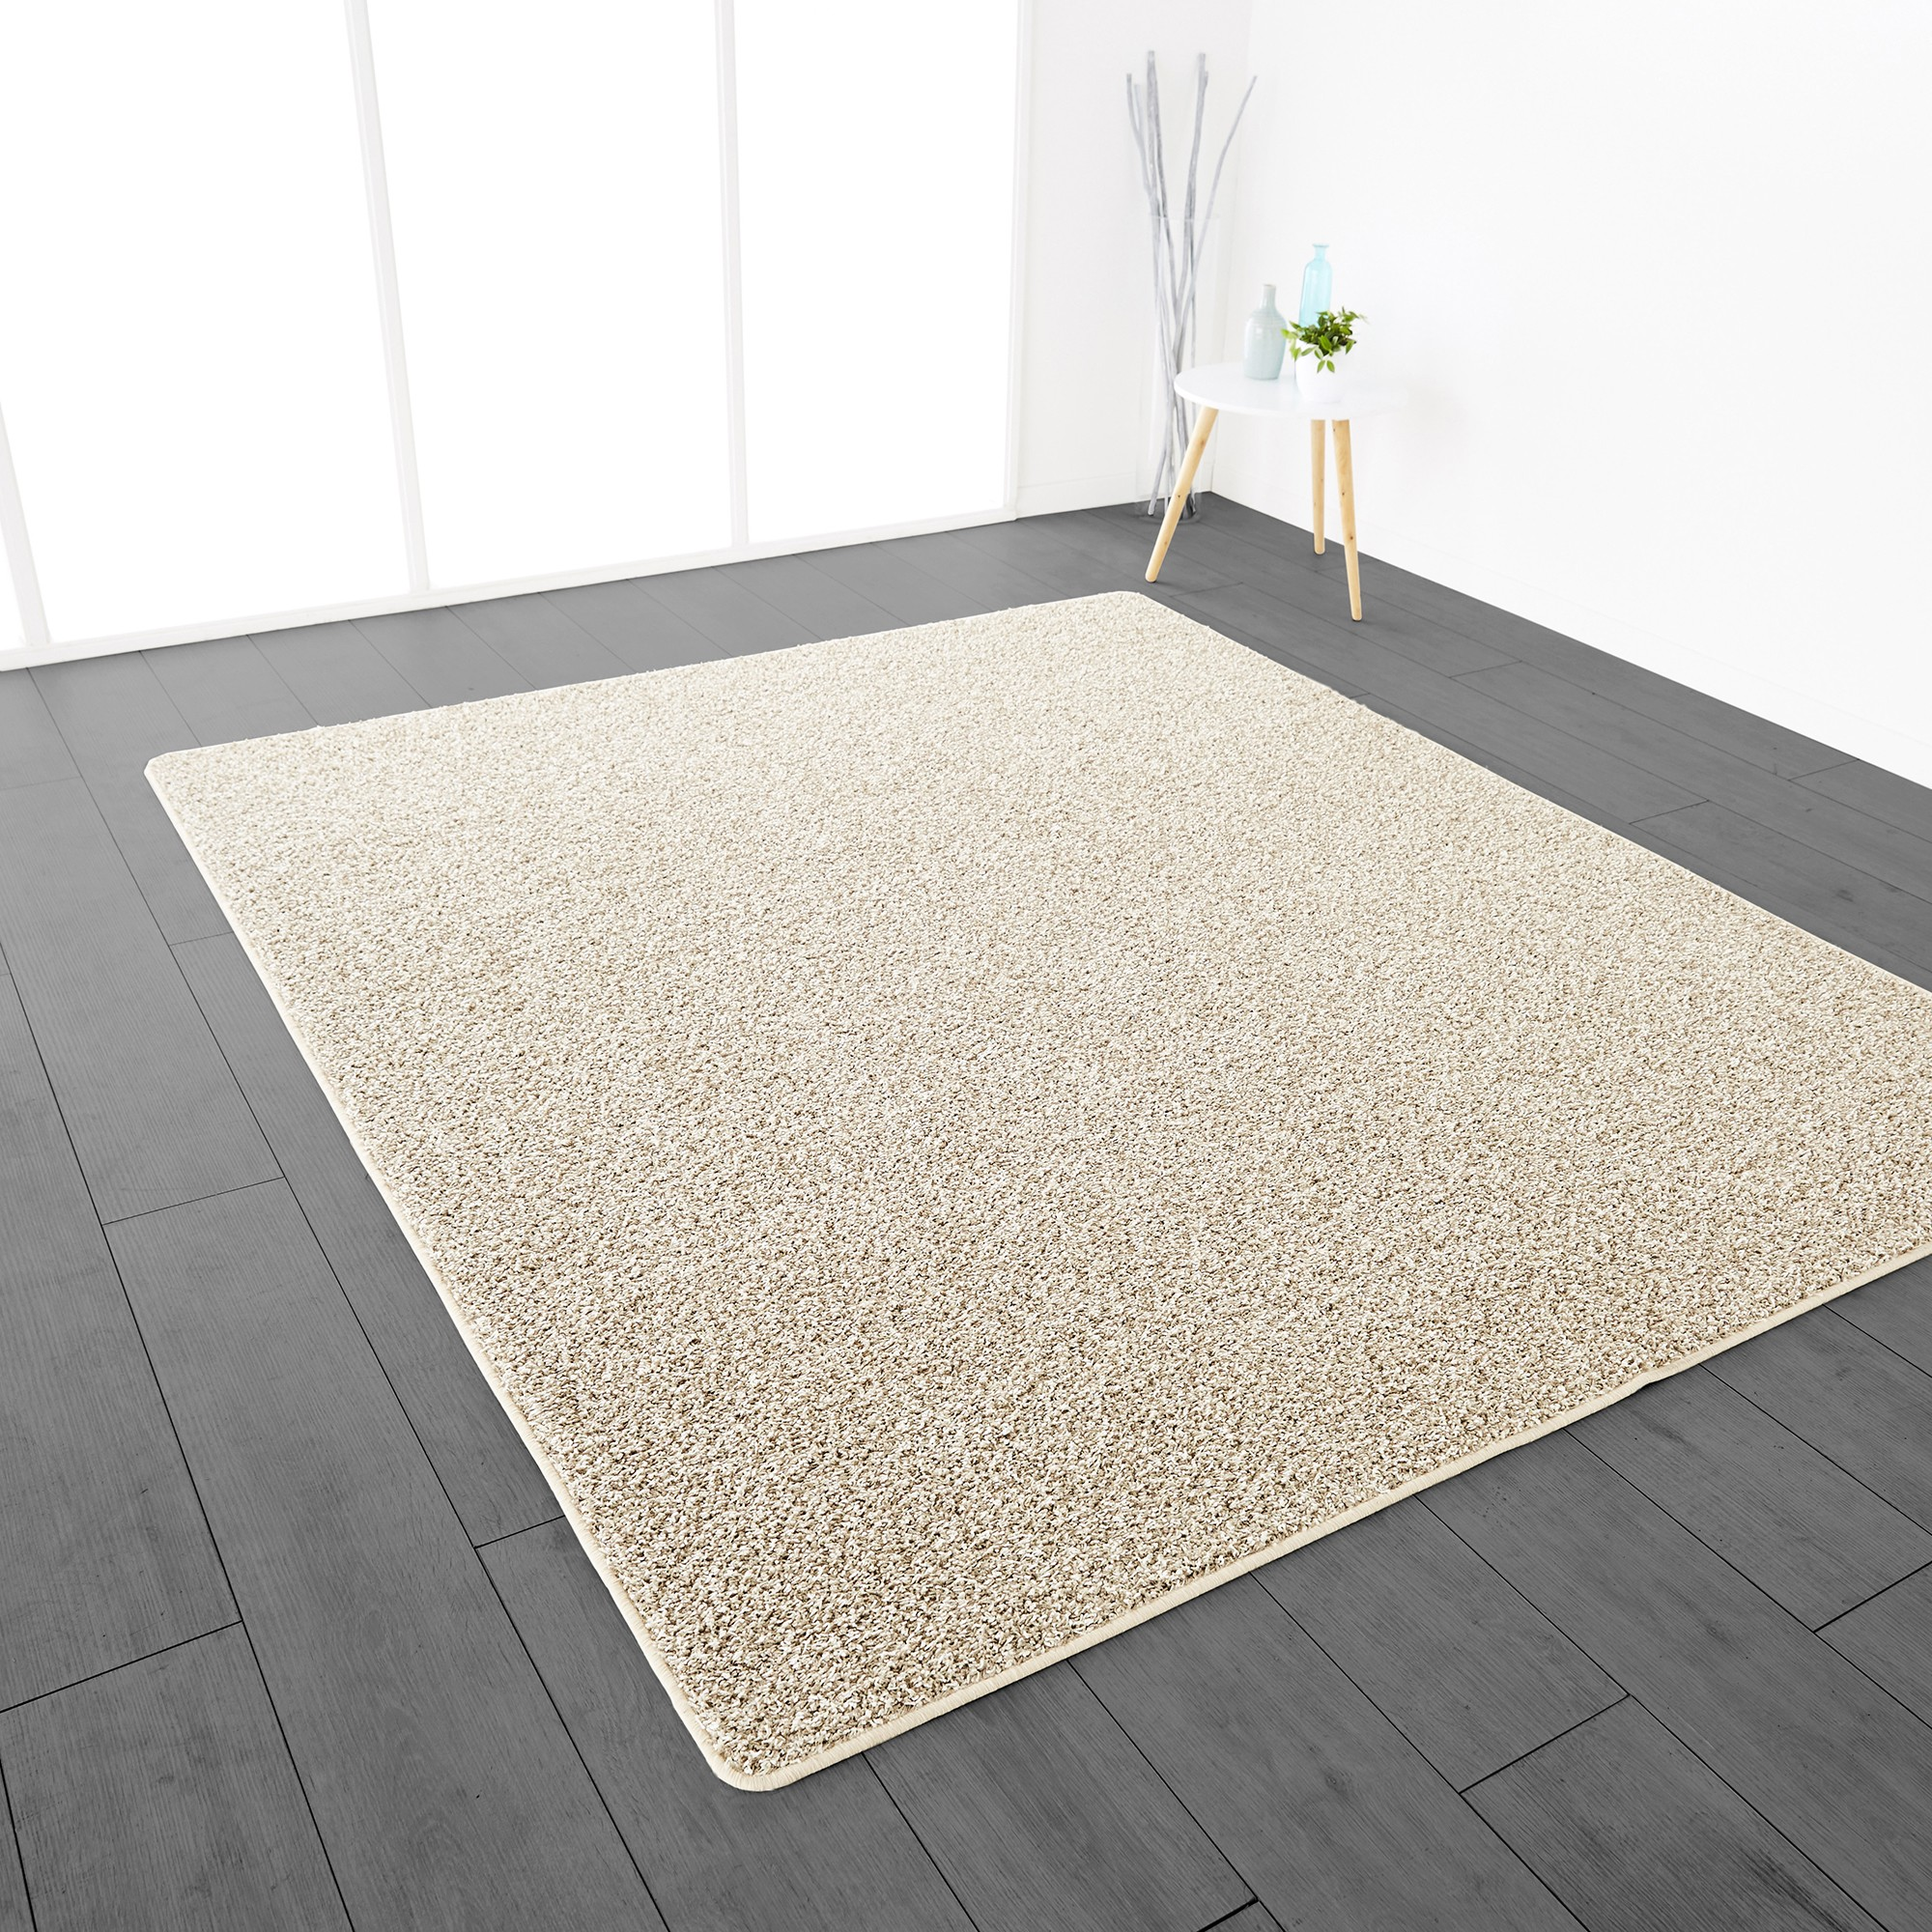 Tapis M Ches Effet Chin Grandes Dimensions Blancheporte